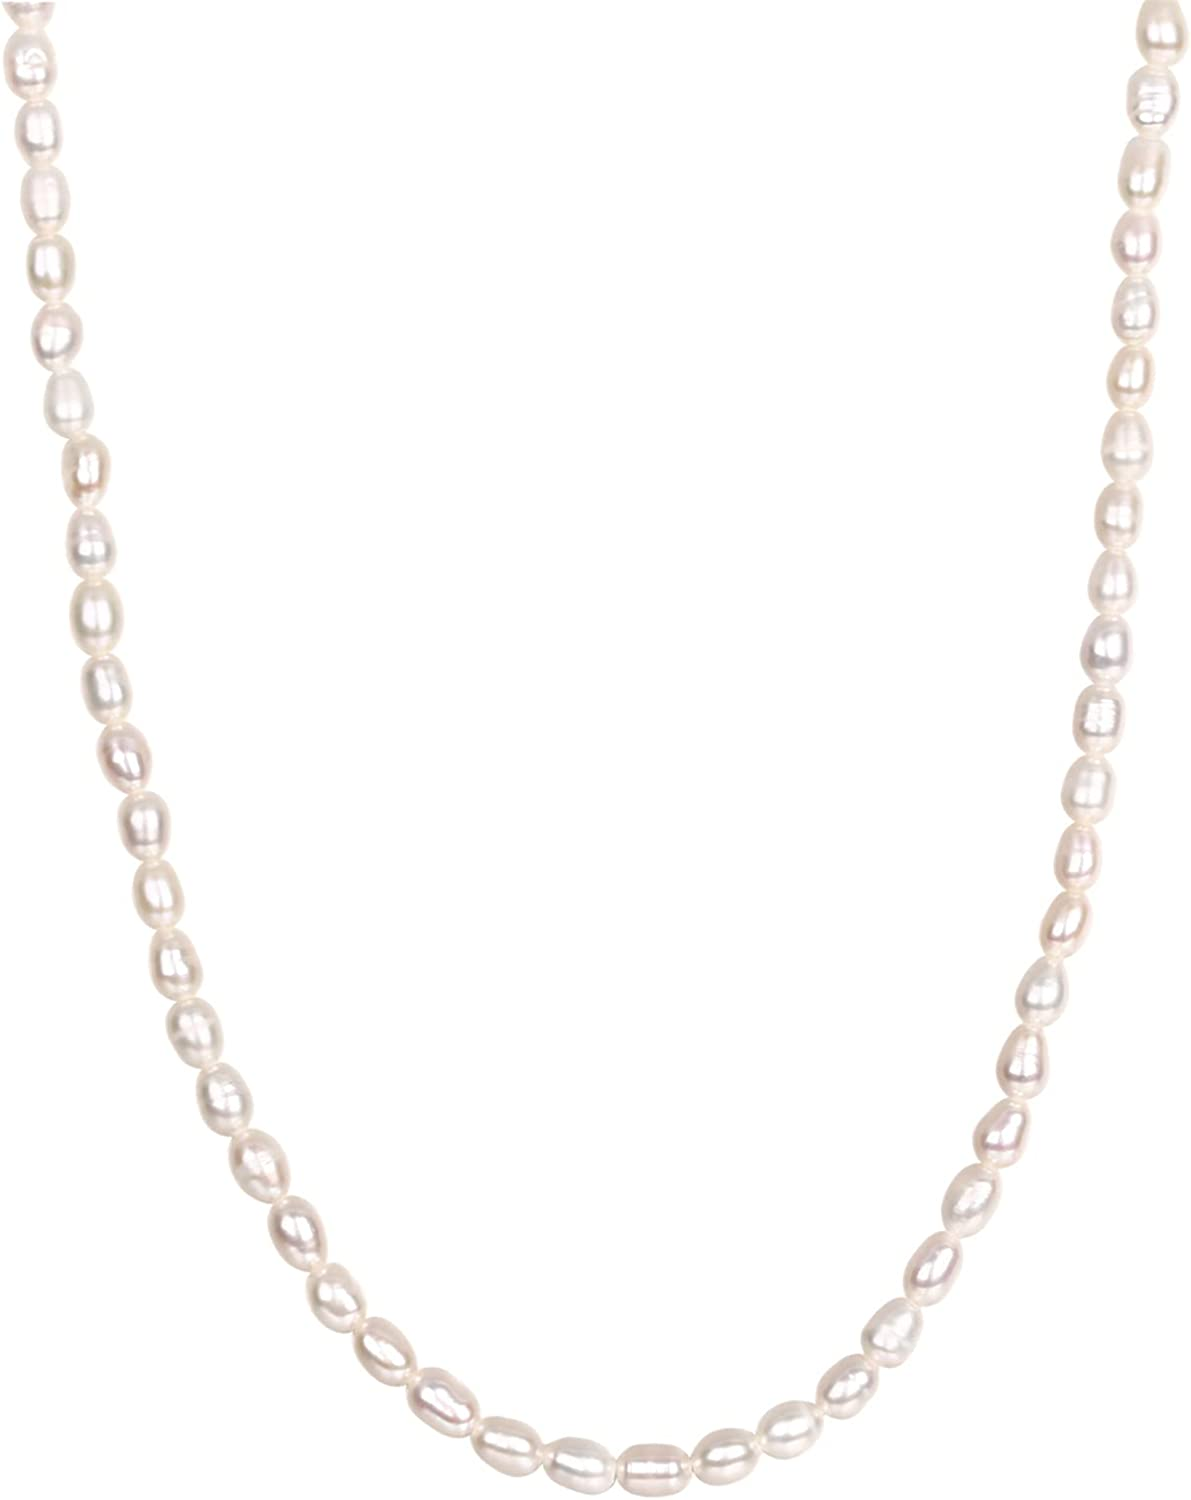 PAVOI 14K Gold Plated Freshwater Pearl Necklace for Women | 14K Yellow Gold Plated Necklace for Women | 4mm Polished Shell Pearl Necklace for Women | 16